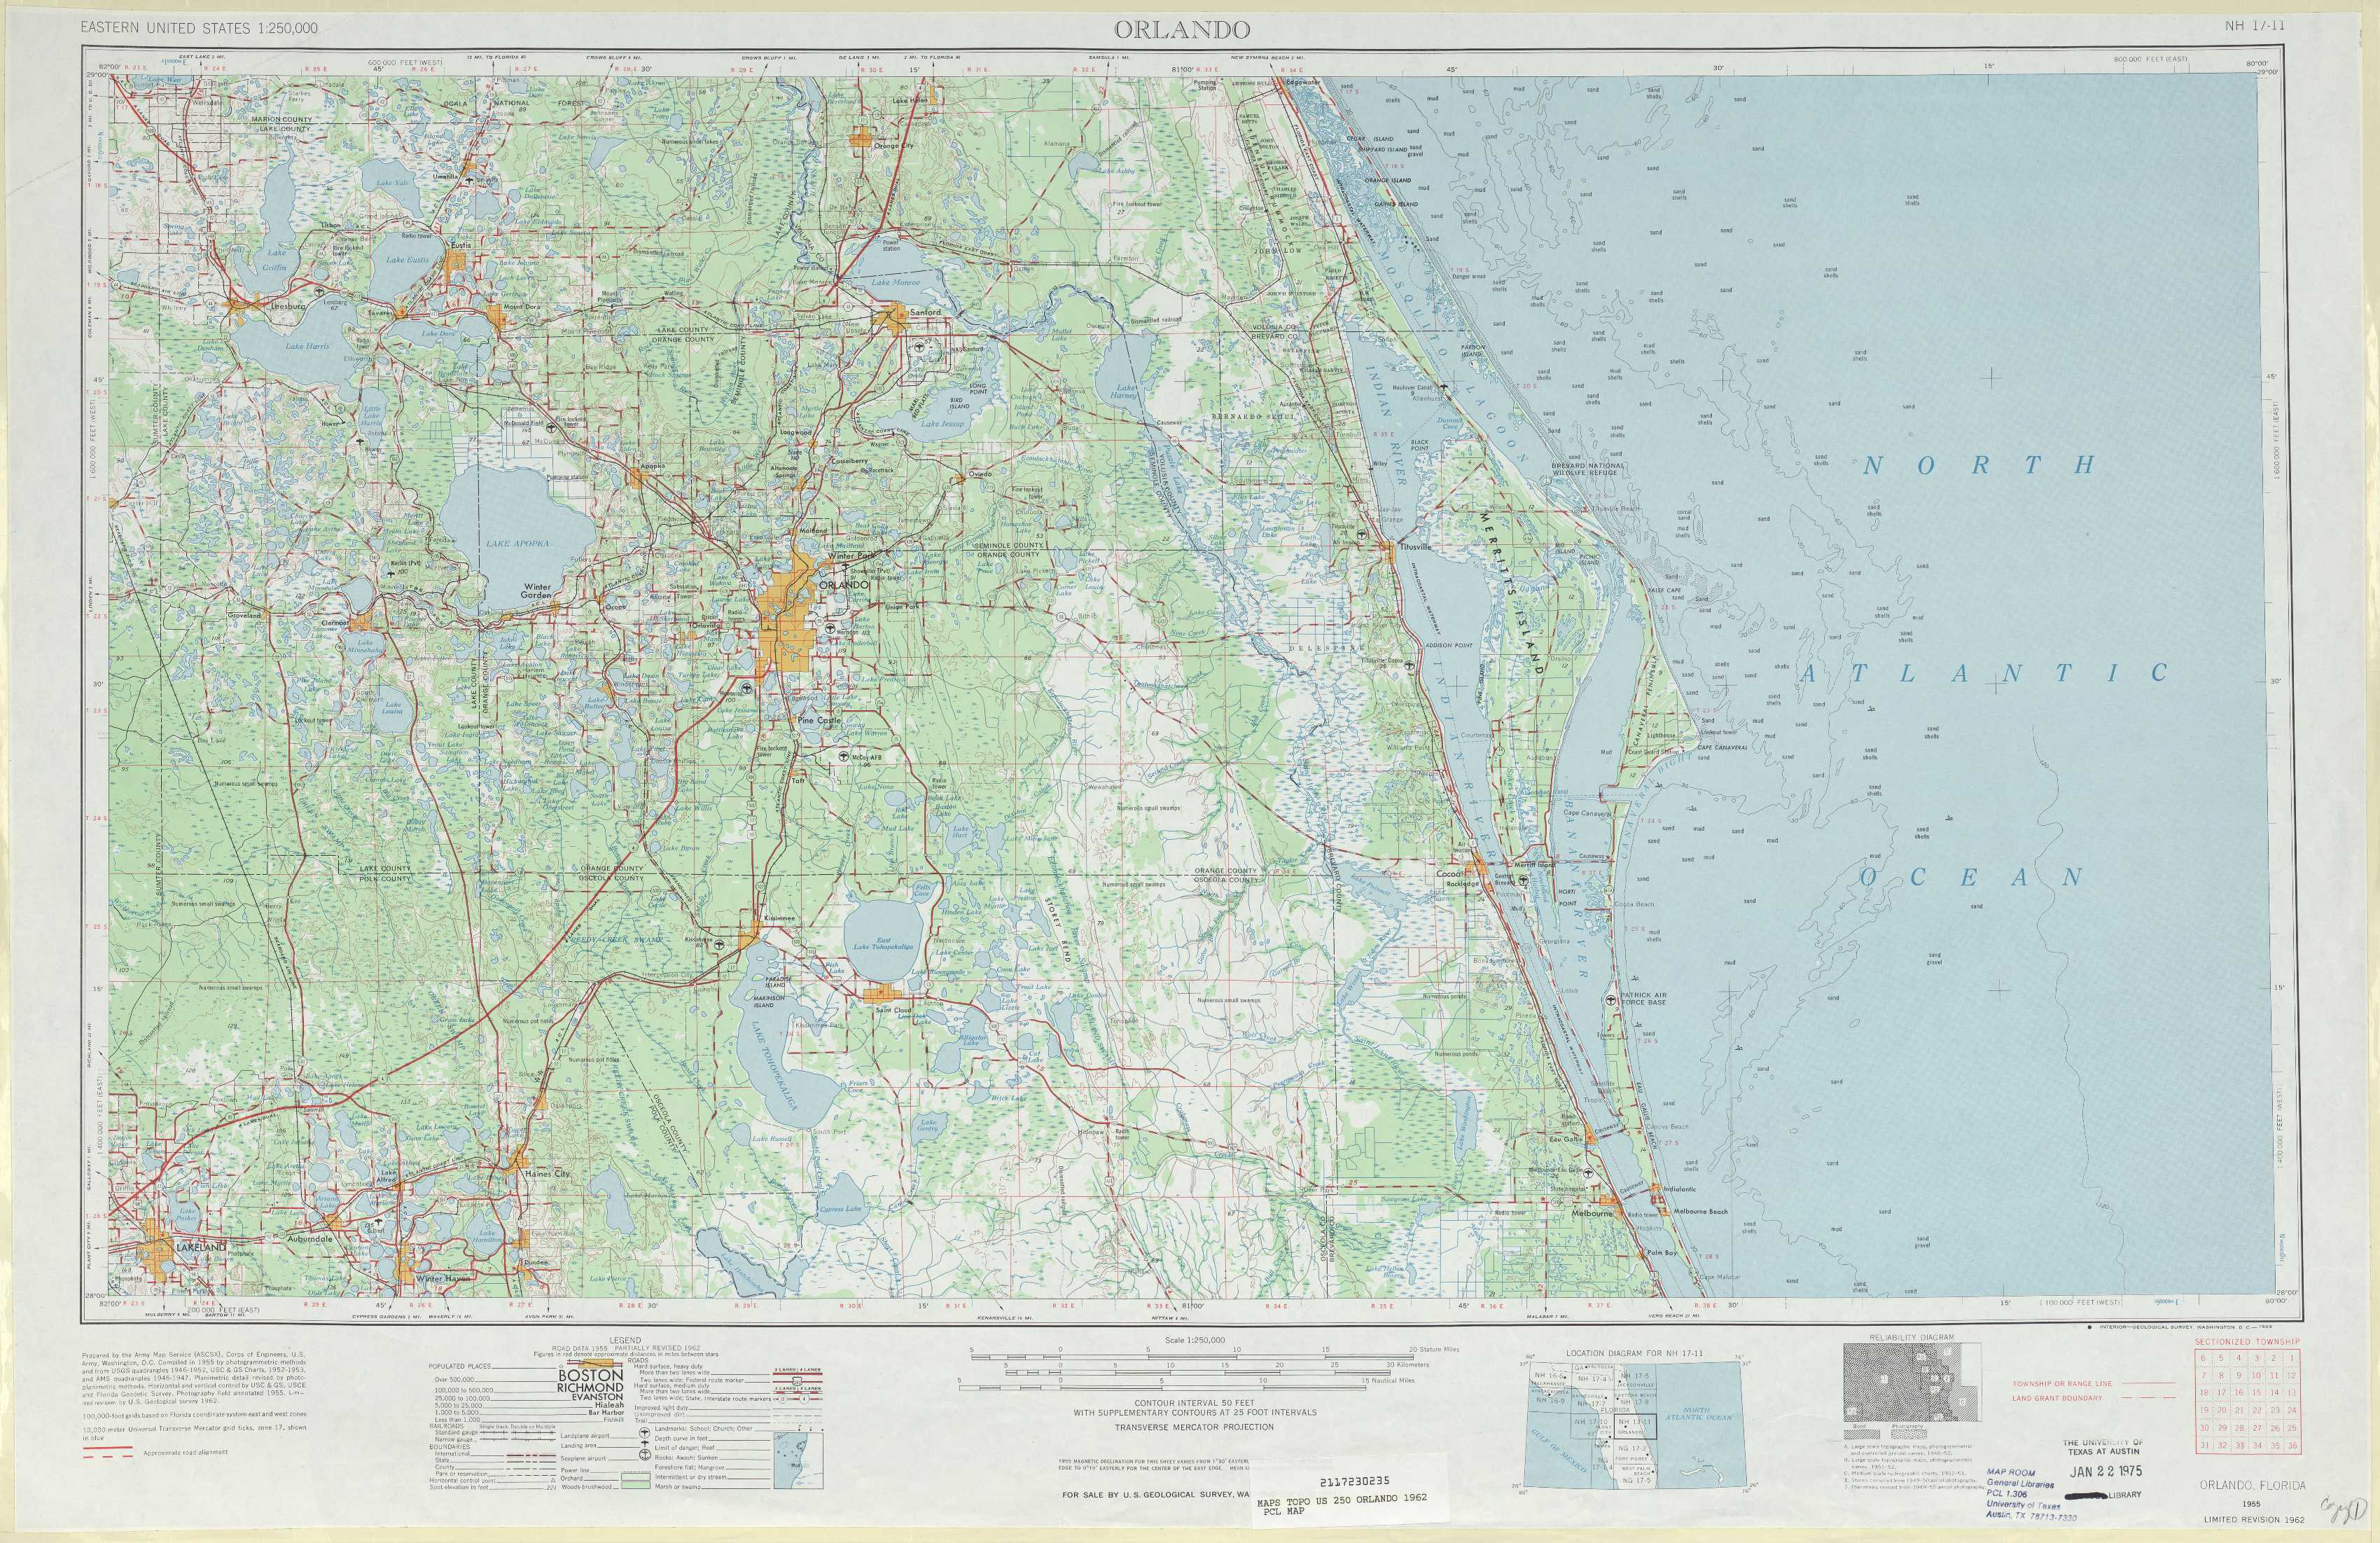 Orlando Topographic Maps, Fl - Usgs Topo Quad 28080A1 At 1:250,000 Scale - Topographic Map Of South Florida